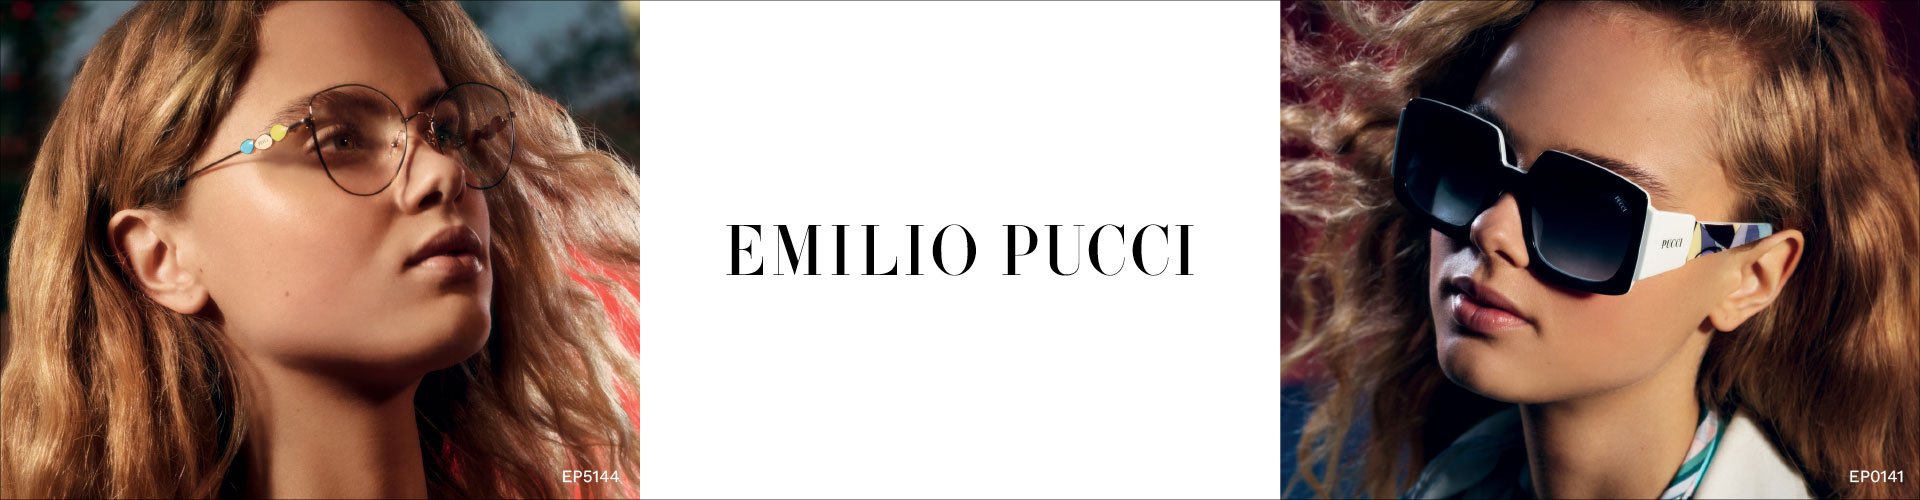 Shop Emilio Pucci Eyeglasses - featuring EP5144 and EP0141